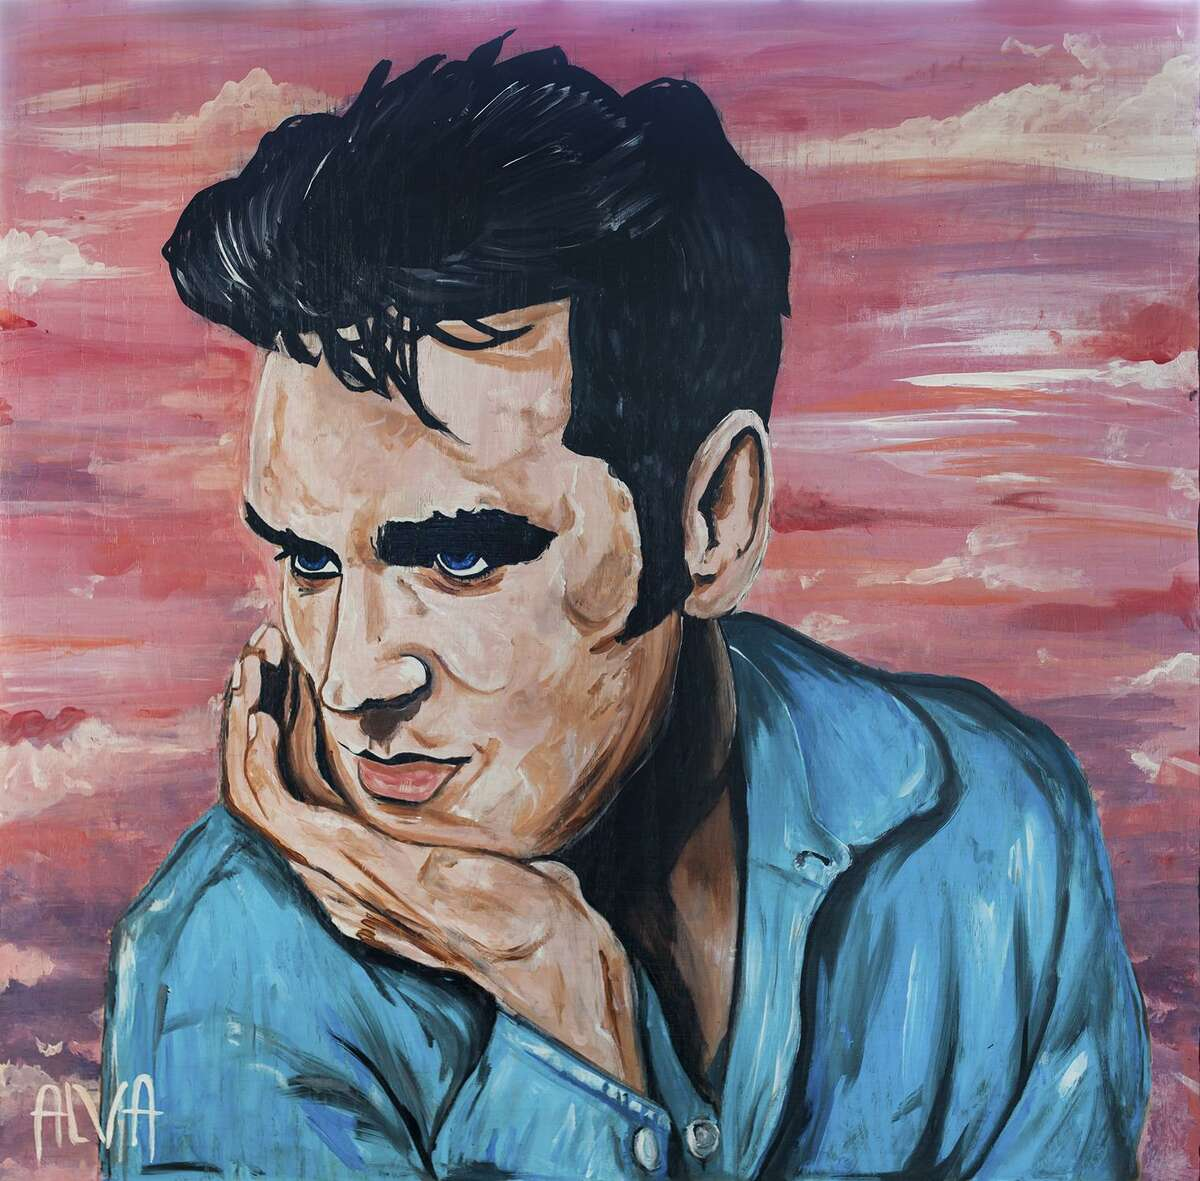 """A portrait of Morrissey by Jenn Alva is one of the works featured in """"November Spawned a Moz Show,"""" a group show at Presa House celebrating an upcoming performance by the British singer. Alva is the bass player for San Antonio band Girl in a Coma, which named for the Smiths' song """"Girl in a Coma"""""""